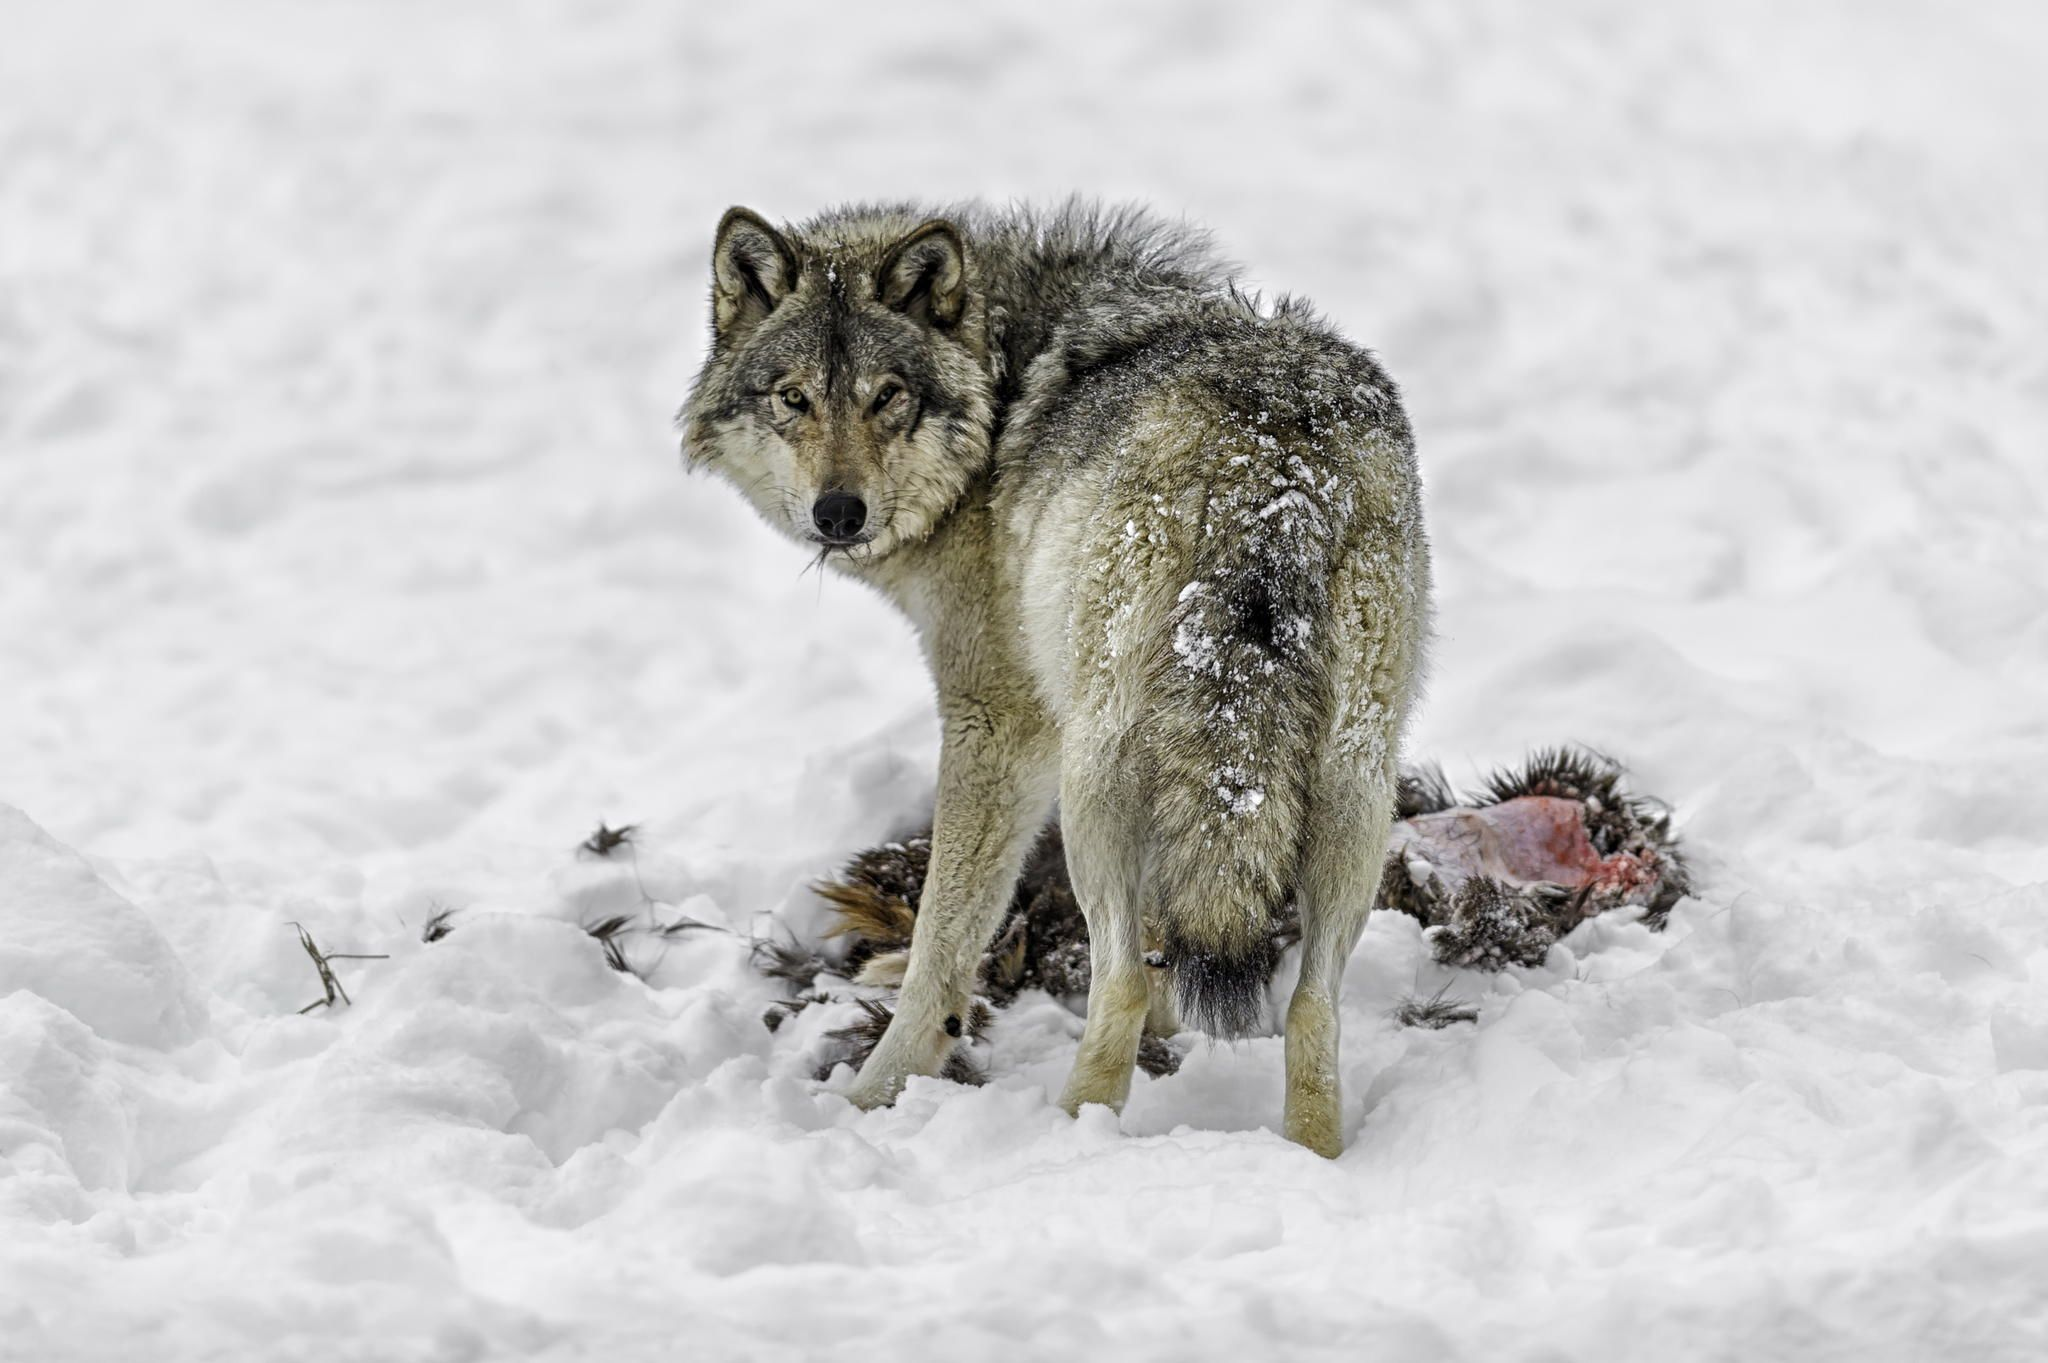 Upon the kill... by Daniel Parent on 500px